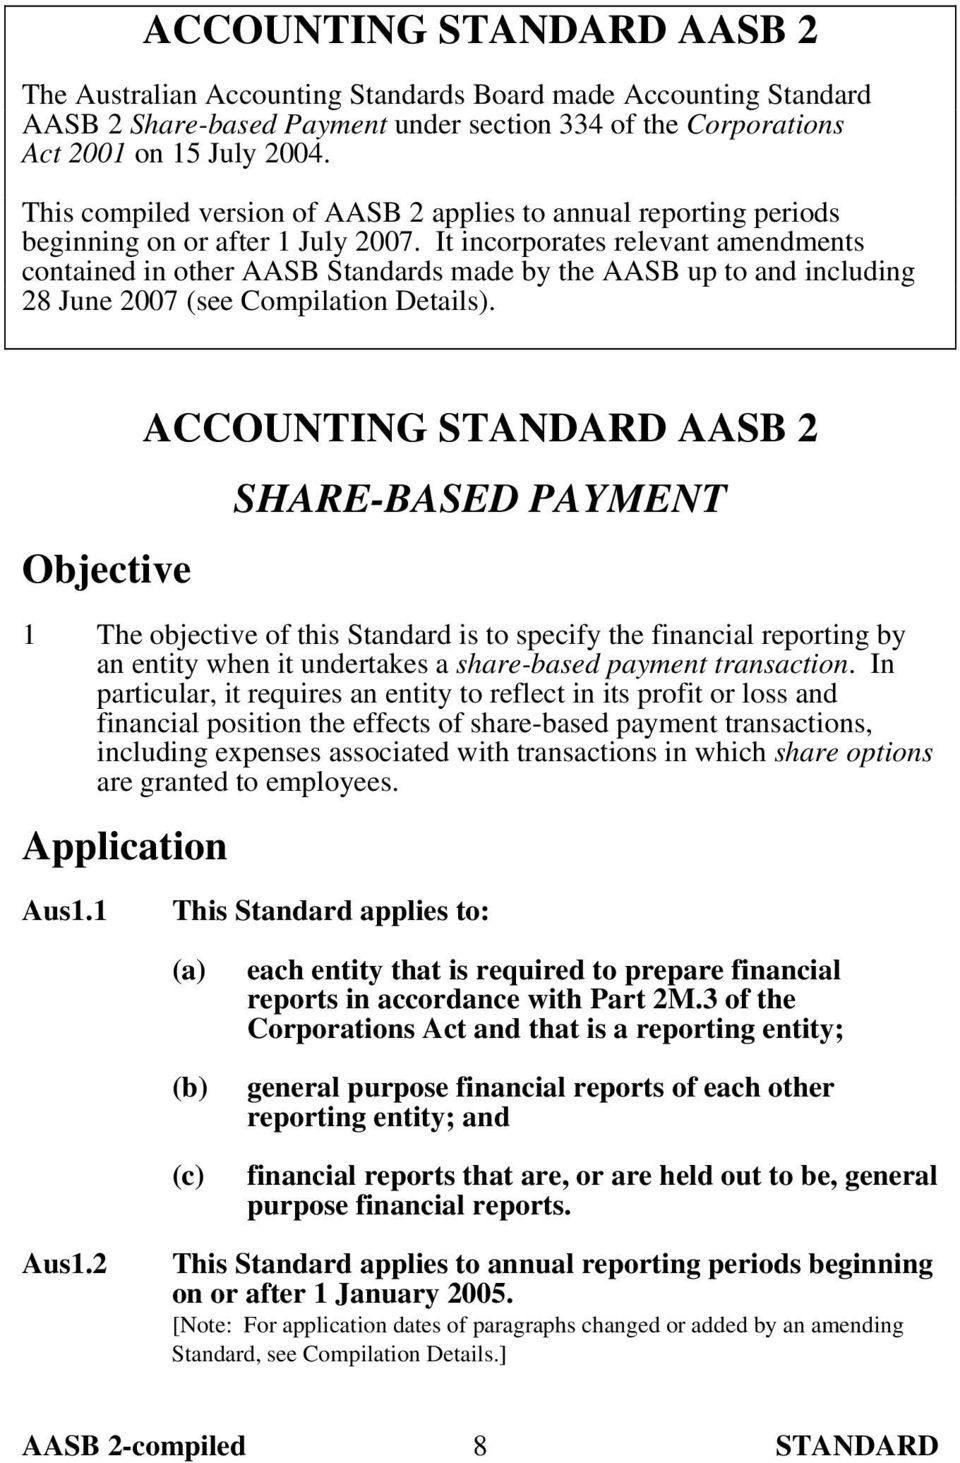 It incorporates relevant amendments contained in other AASB Standards made by the AASB up to and including 28 June 2007 (see Compilation Details).